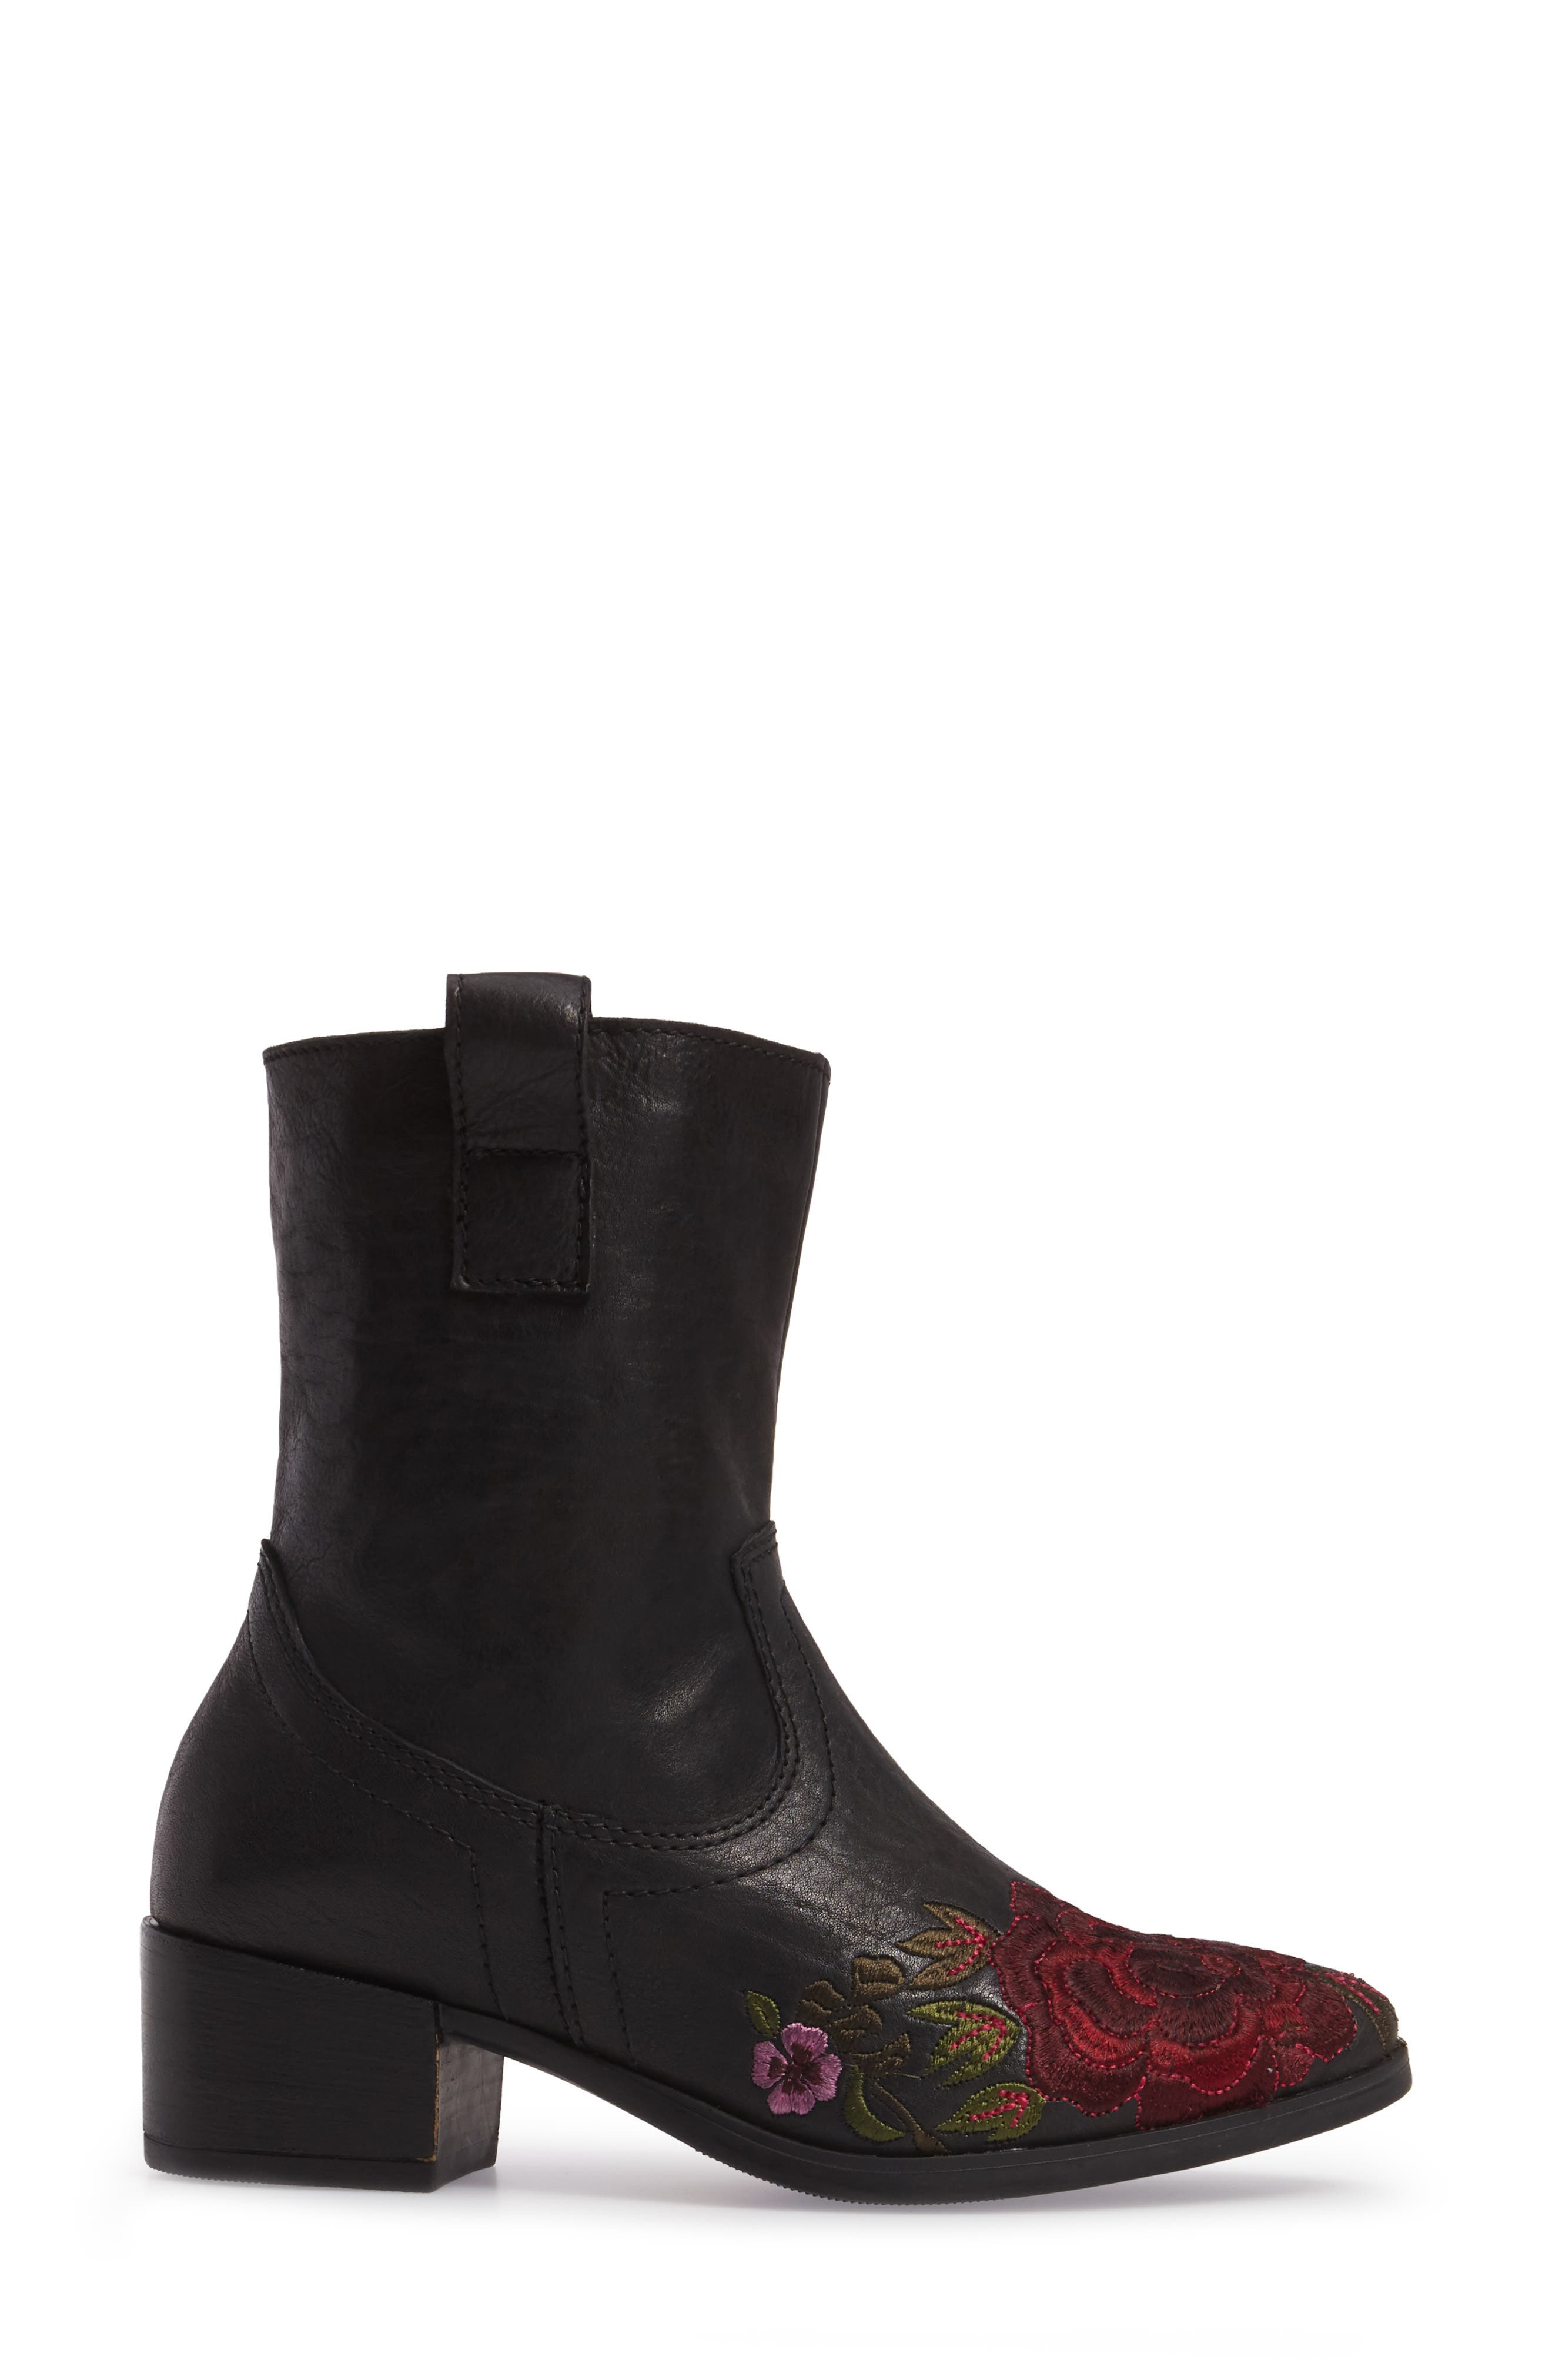 Shallot Floral Embroidered Bootie,                             Alternate thumbnail 3, color,                             Black Leather